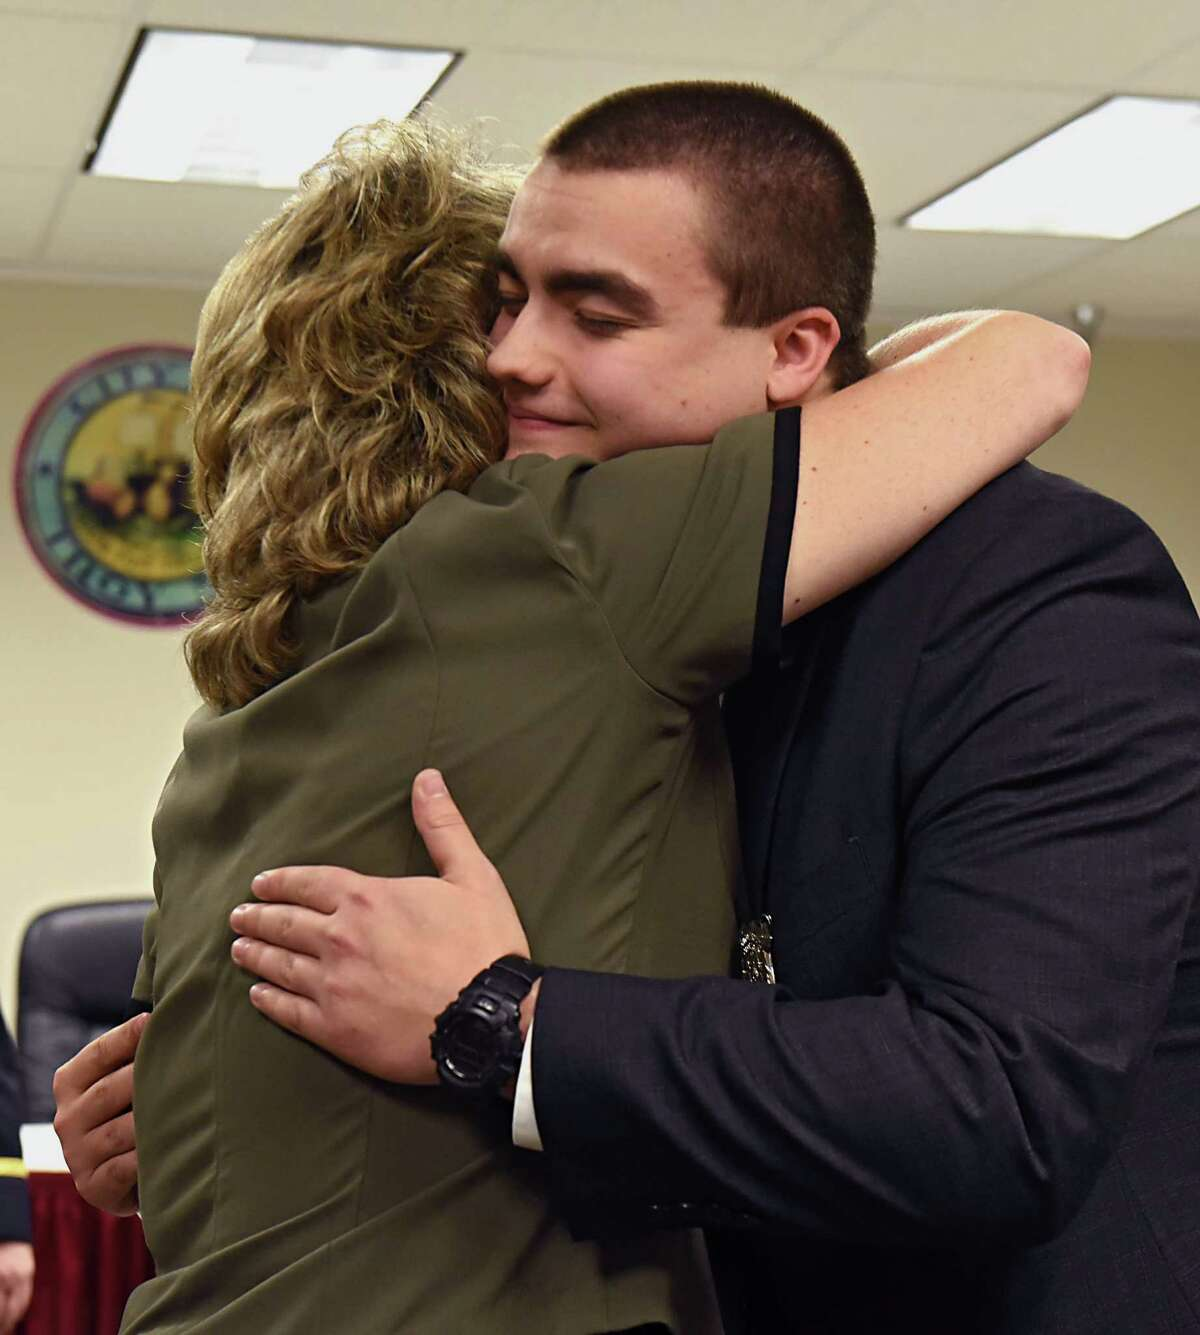 New police officer Corey Otterbeck, 22, gets a hug from his mother, Julie, after she pinned his new badge on him at a swearing-in ceremony for seven new police officers on Monday, Jan. 23, 2017 in Troy, N.Y. Otterbeck was a Troy Police Cadet from 2011-2015. (Lori Van Buren / Times Union)